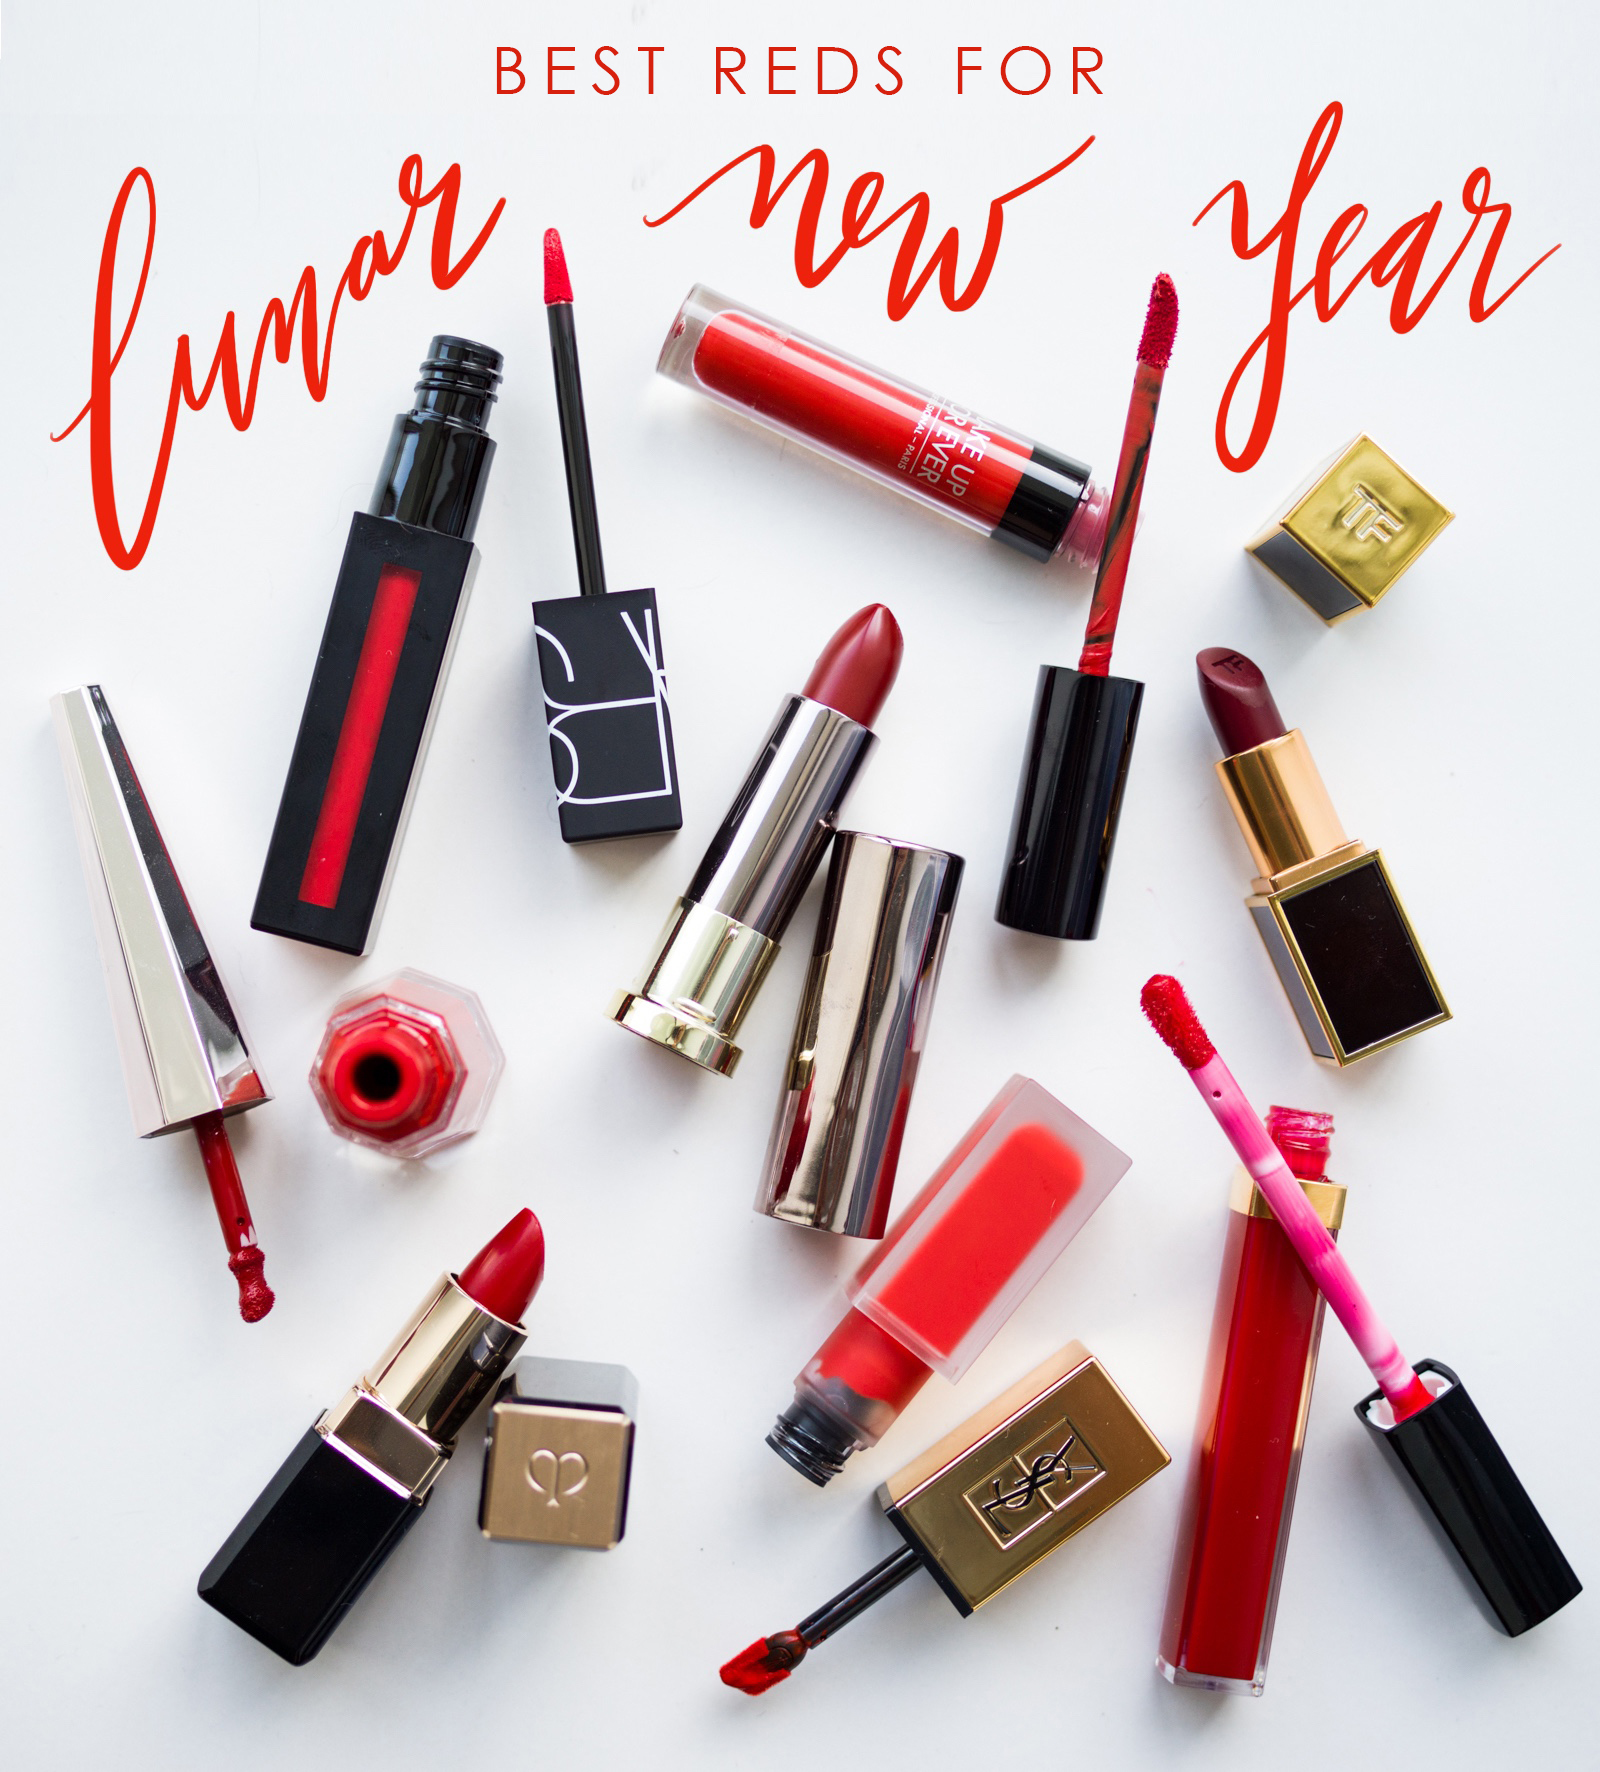 Best Red Lipstick for Chinese New Year